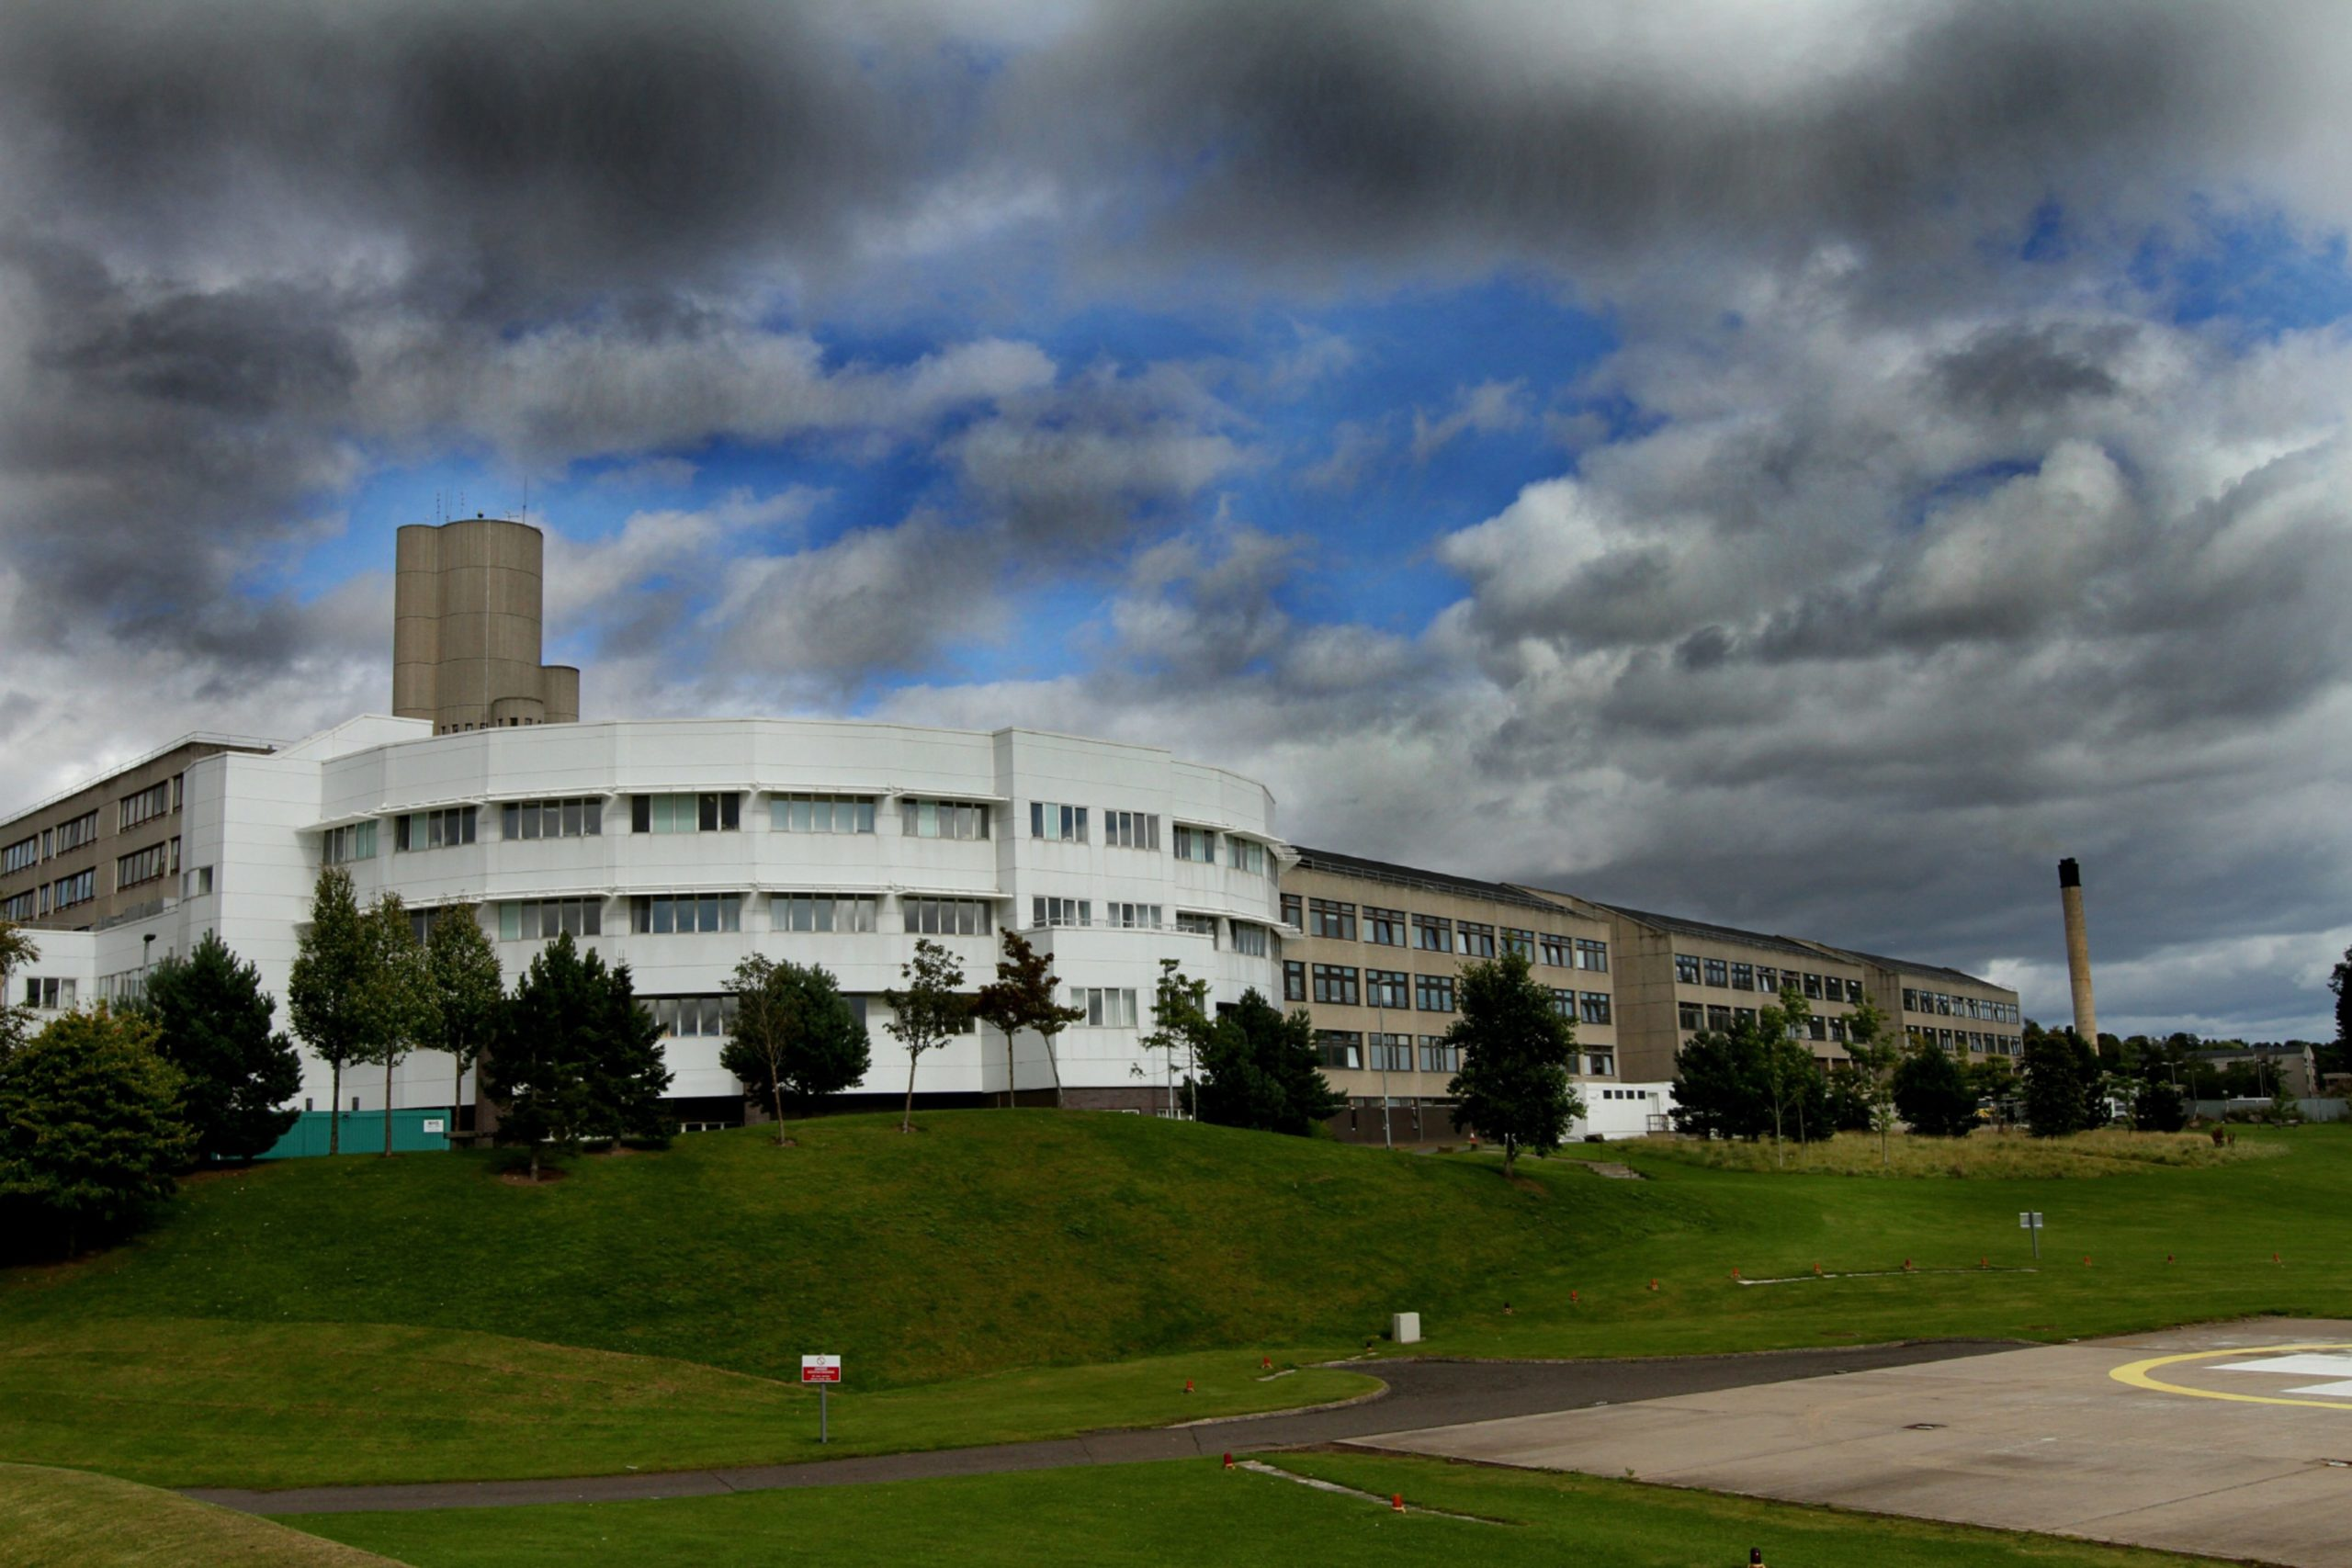 Medical students usually have placements at Dundee's Ninewells Hospital. Photo by Gareth Jennings/DCT Media.